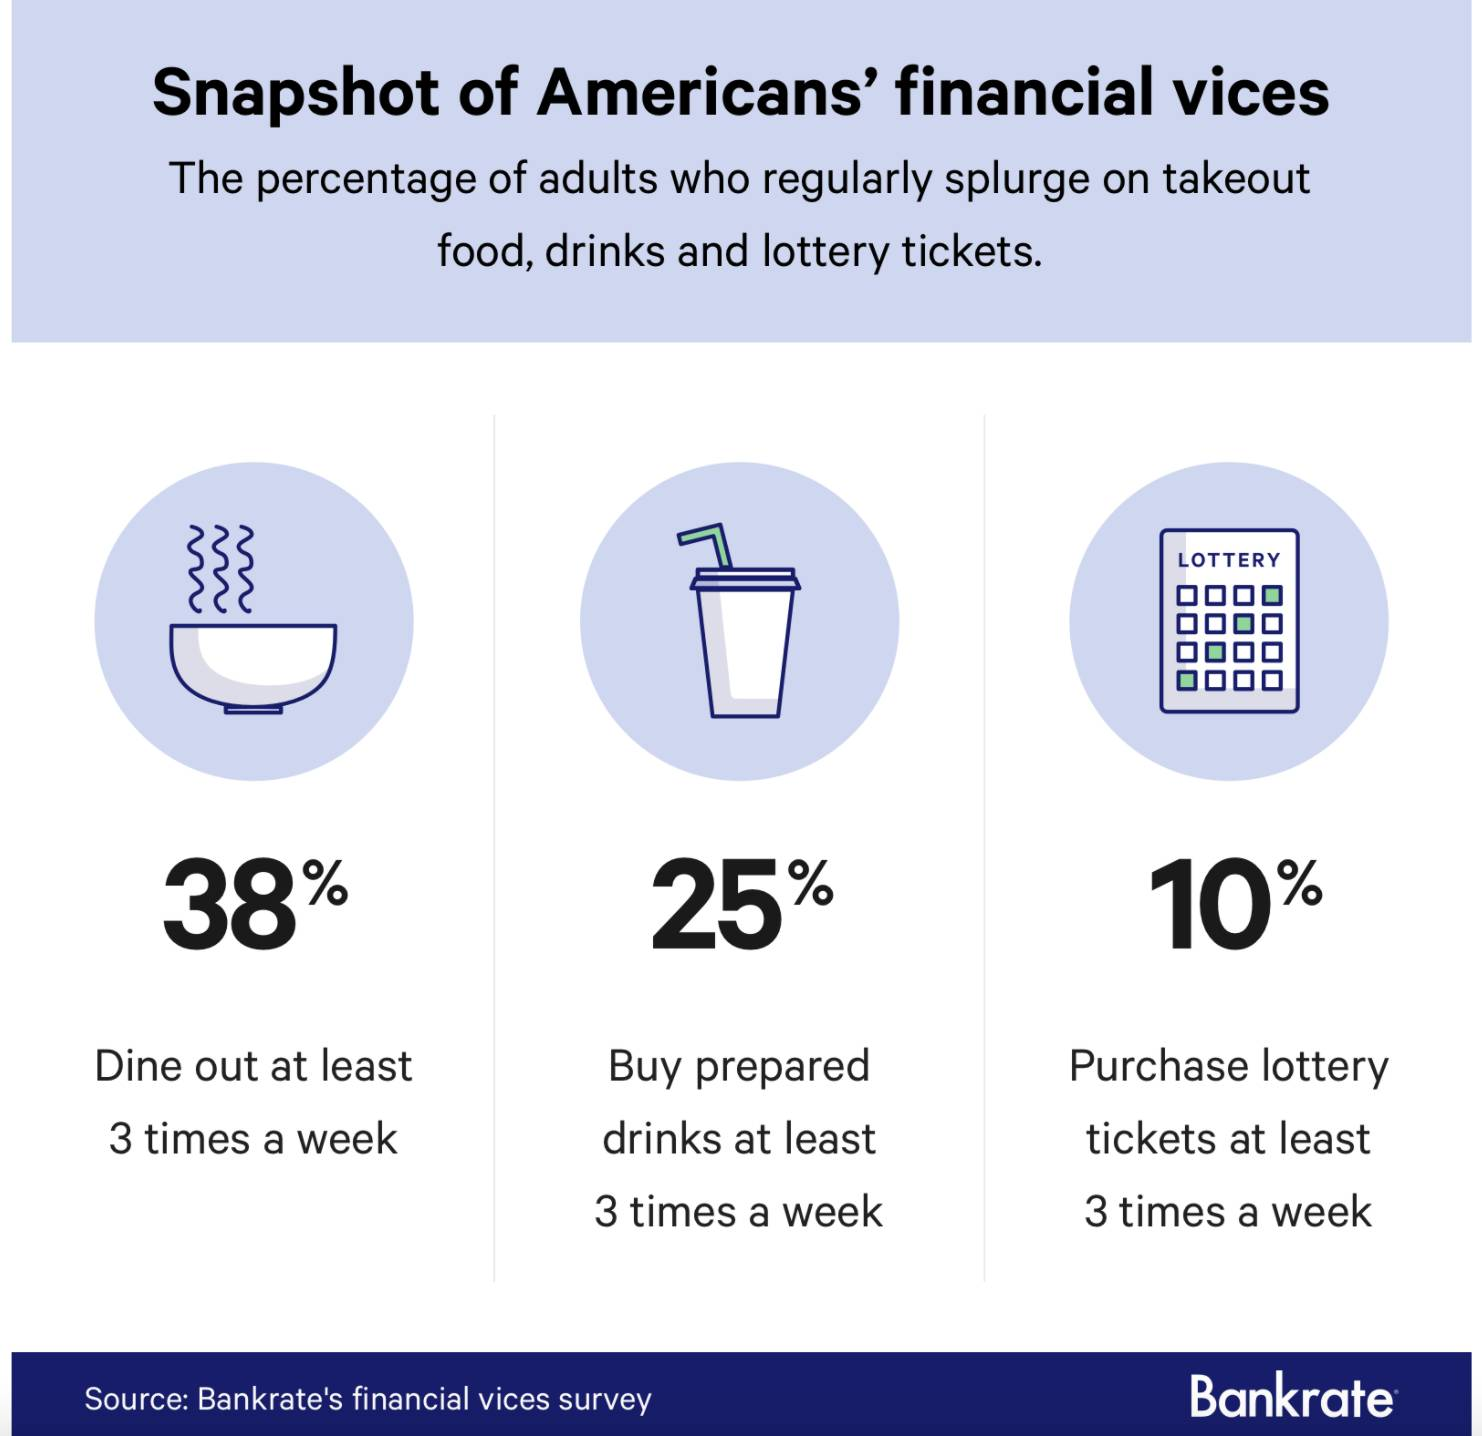 American Financial Vices